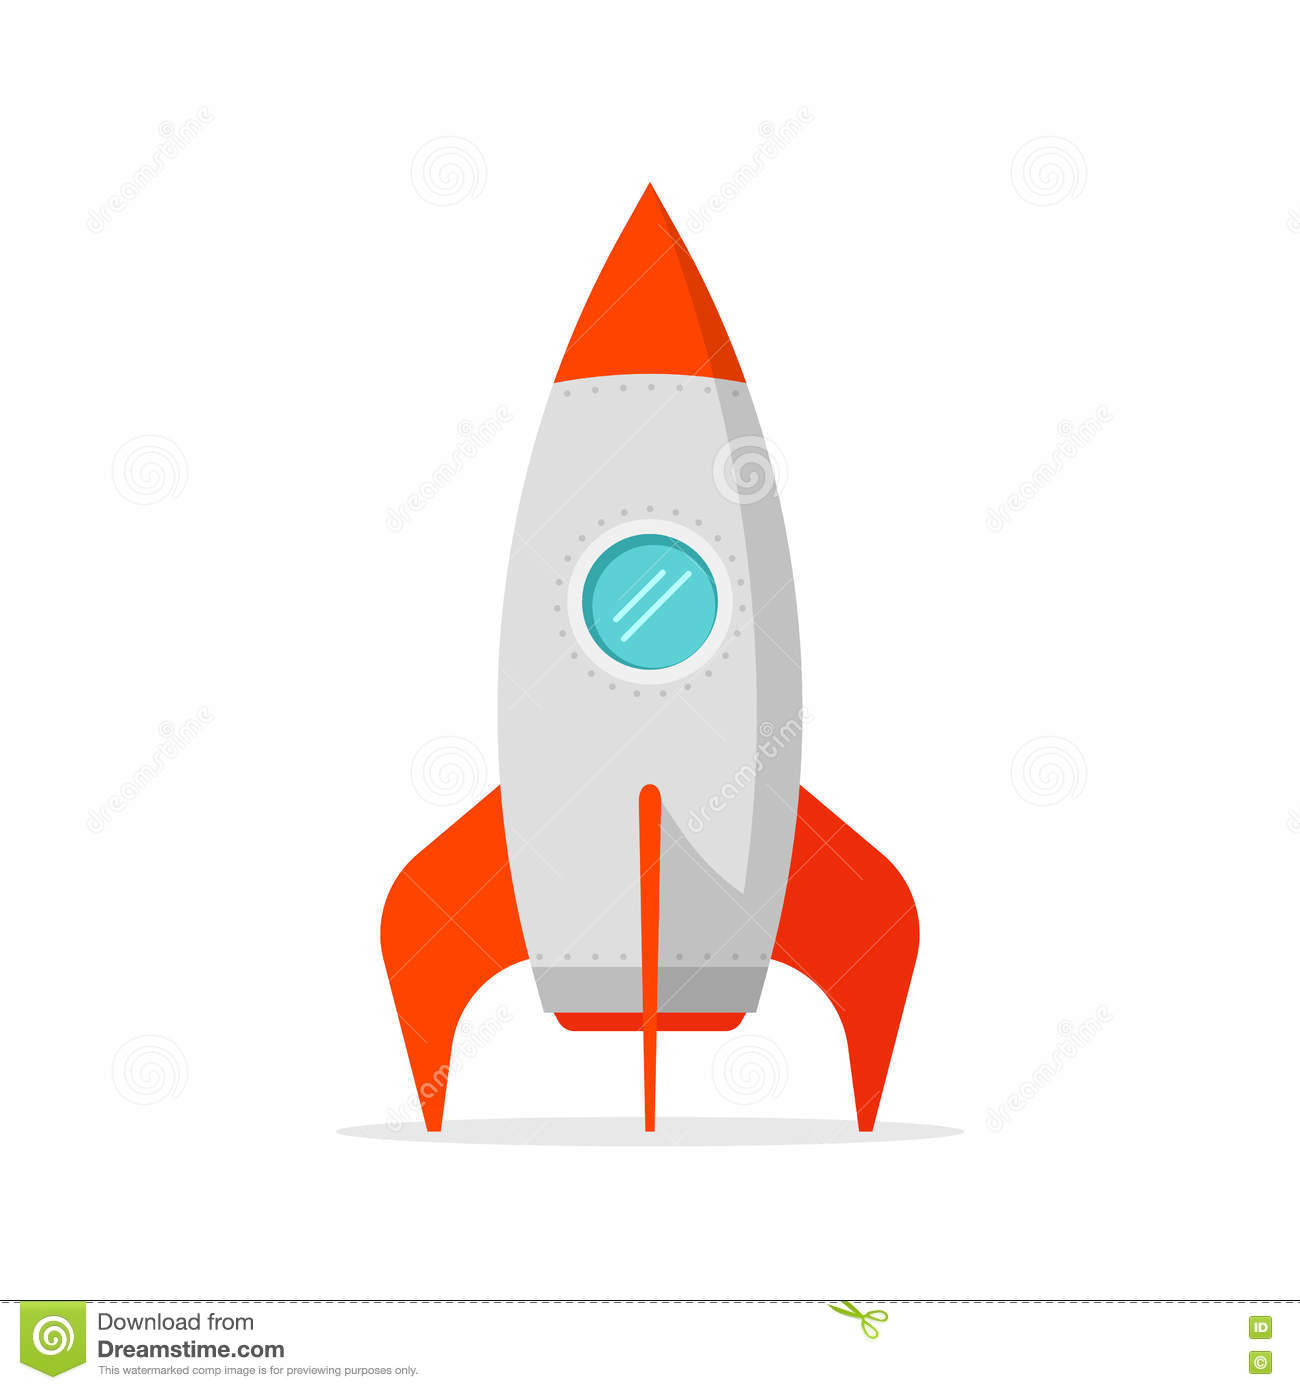 Rocket ship vector on white background standing